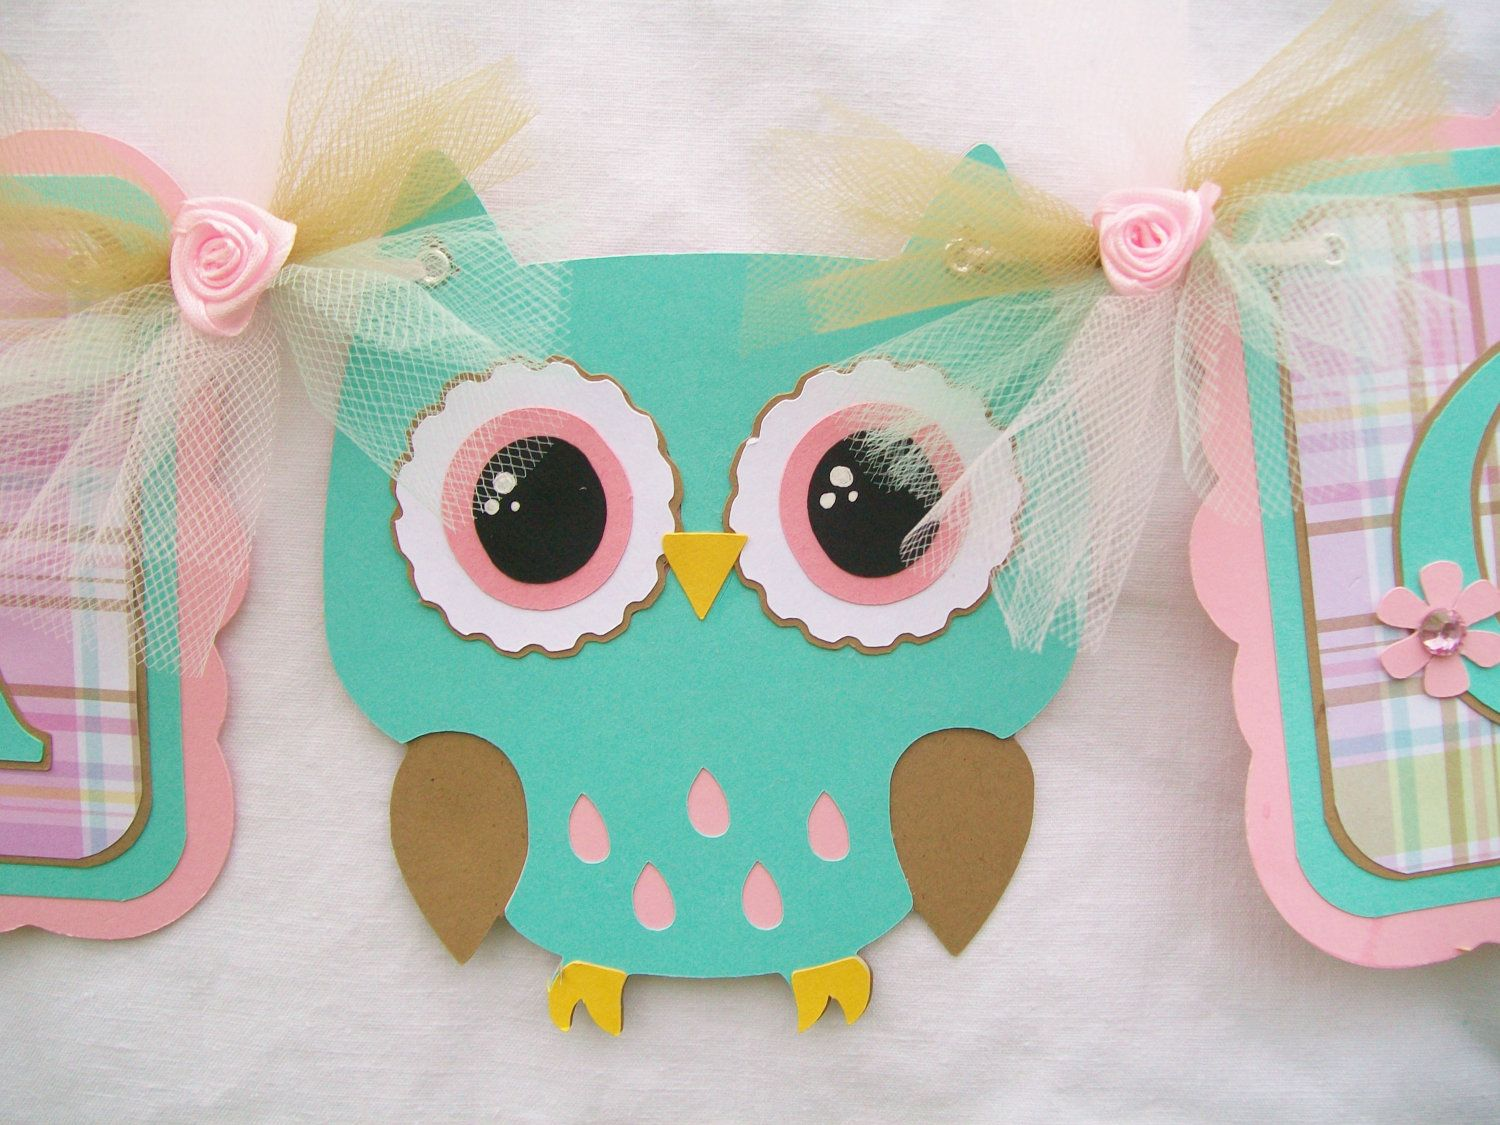 Owl Baby Shower, Owl Banner, Owl Baby, Owl Decorations, Baby Shower Banner,  Pink And Teal Decorations, Photo Prop, Itu0027s A Girl Banner